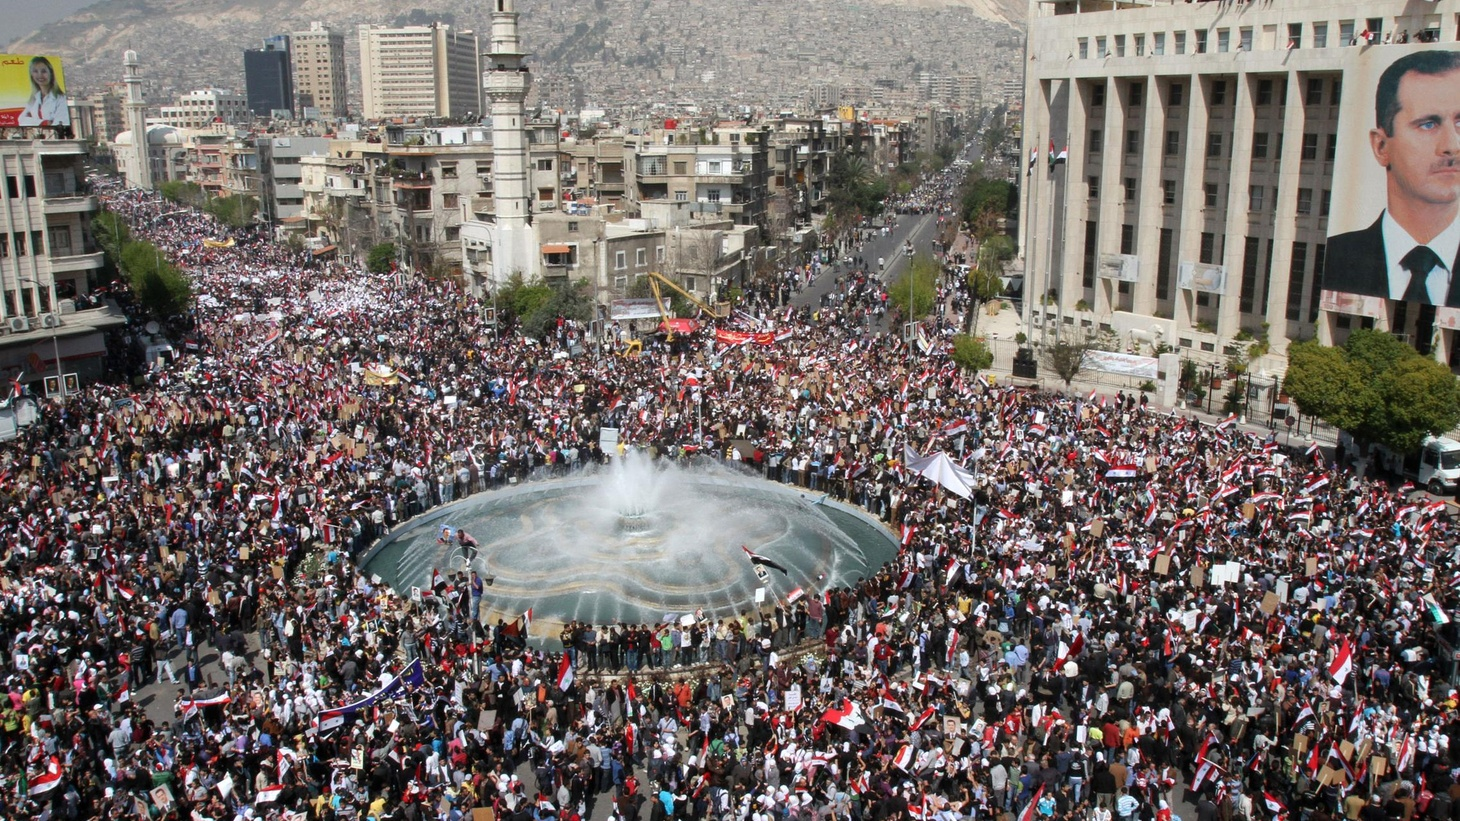 Syria has been beset by protests similar to those that have brought down other governments in the region. Guest host Sara Terry considers whether the regime can hold on to power.